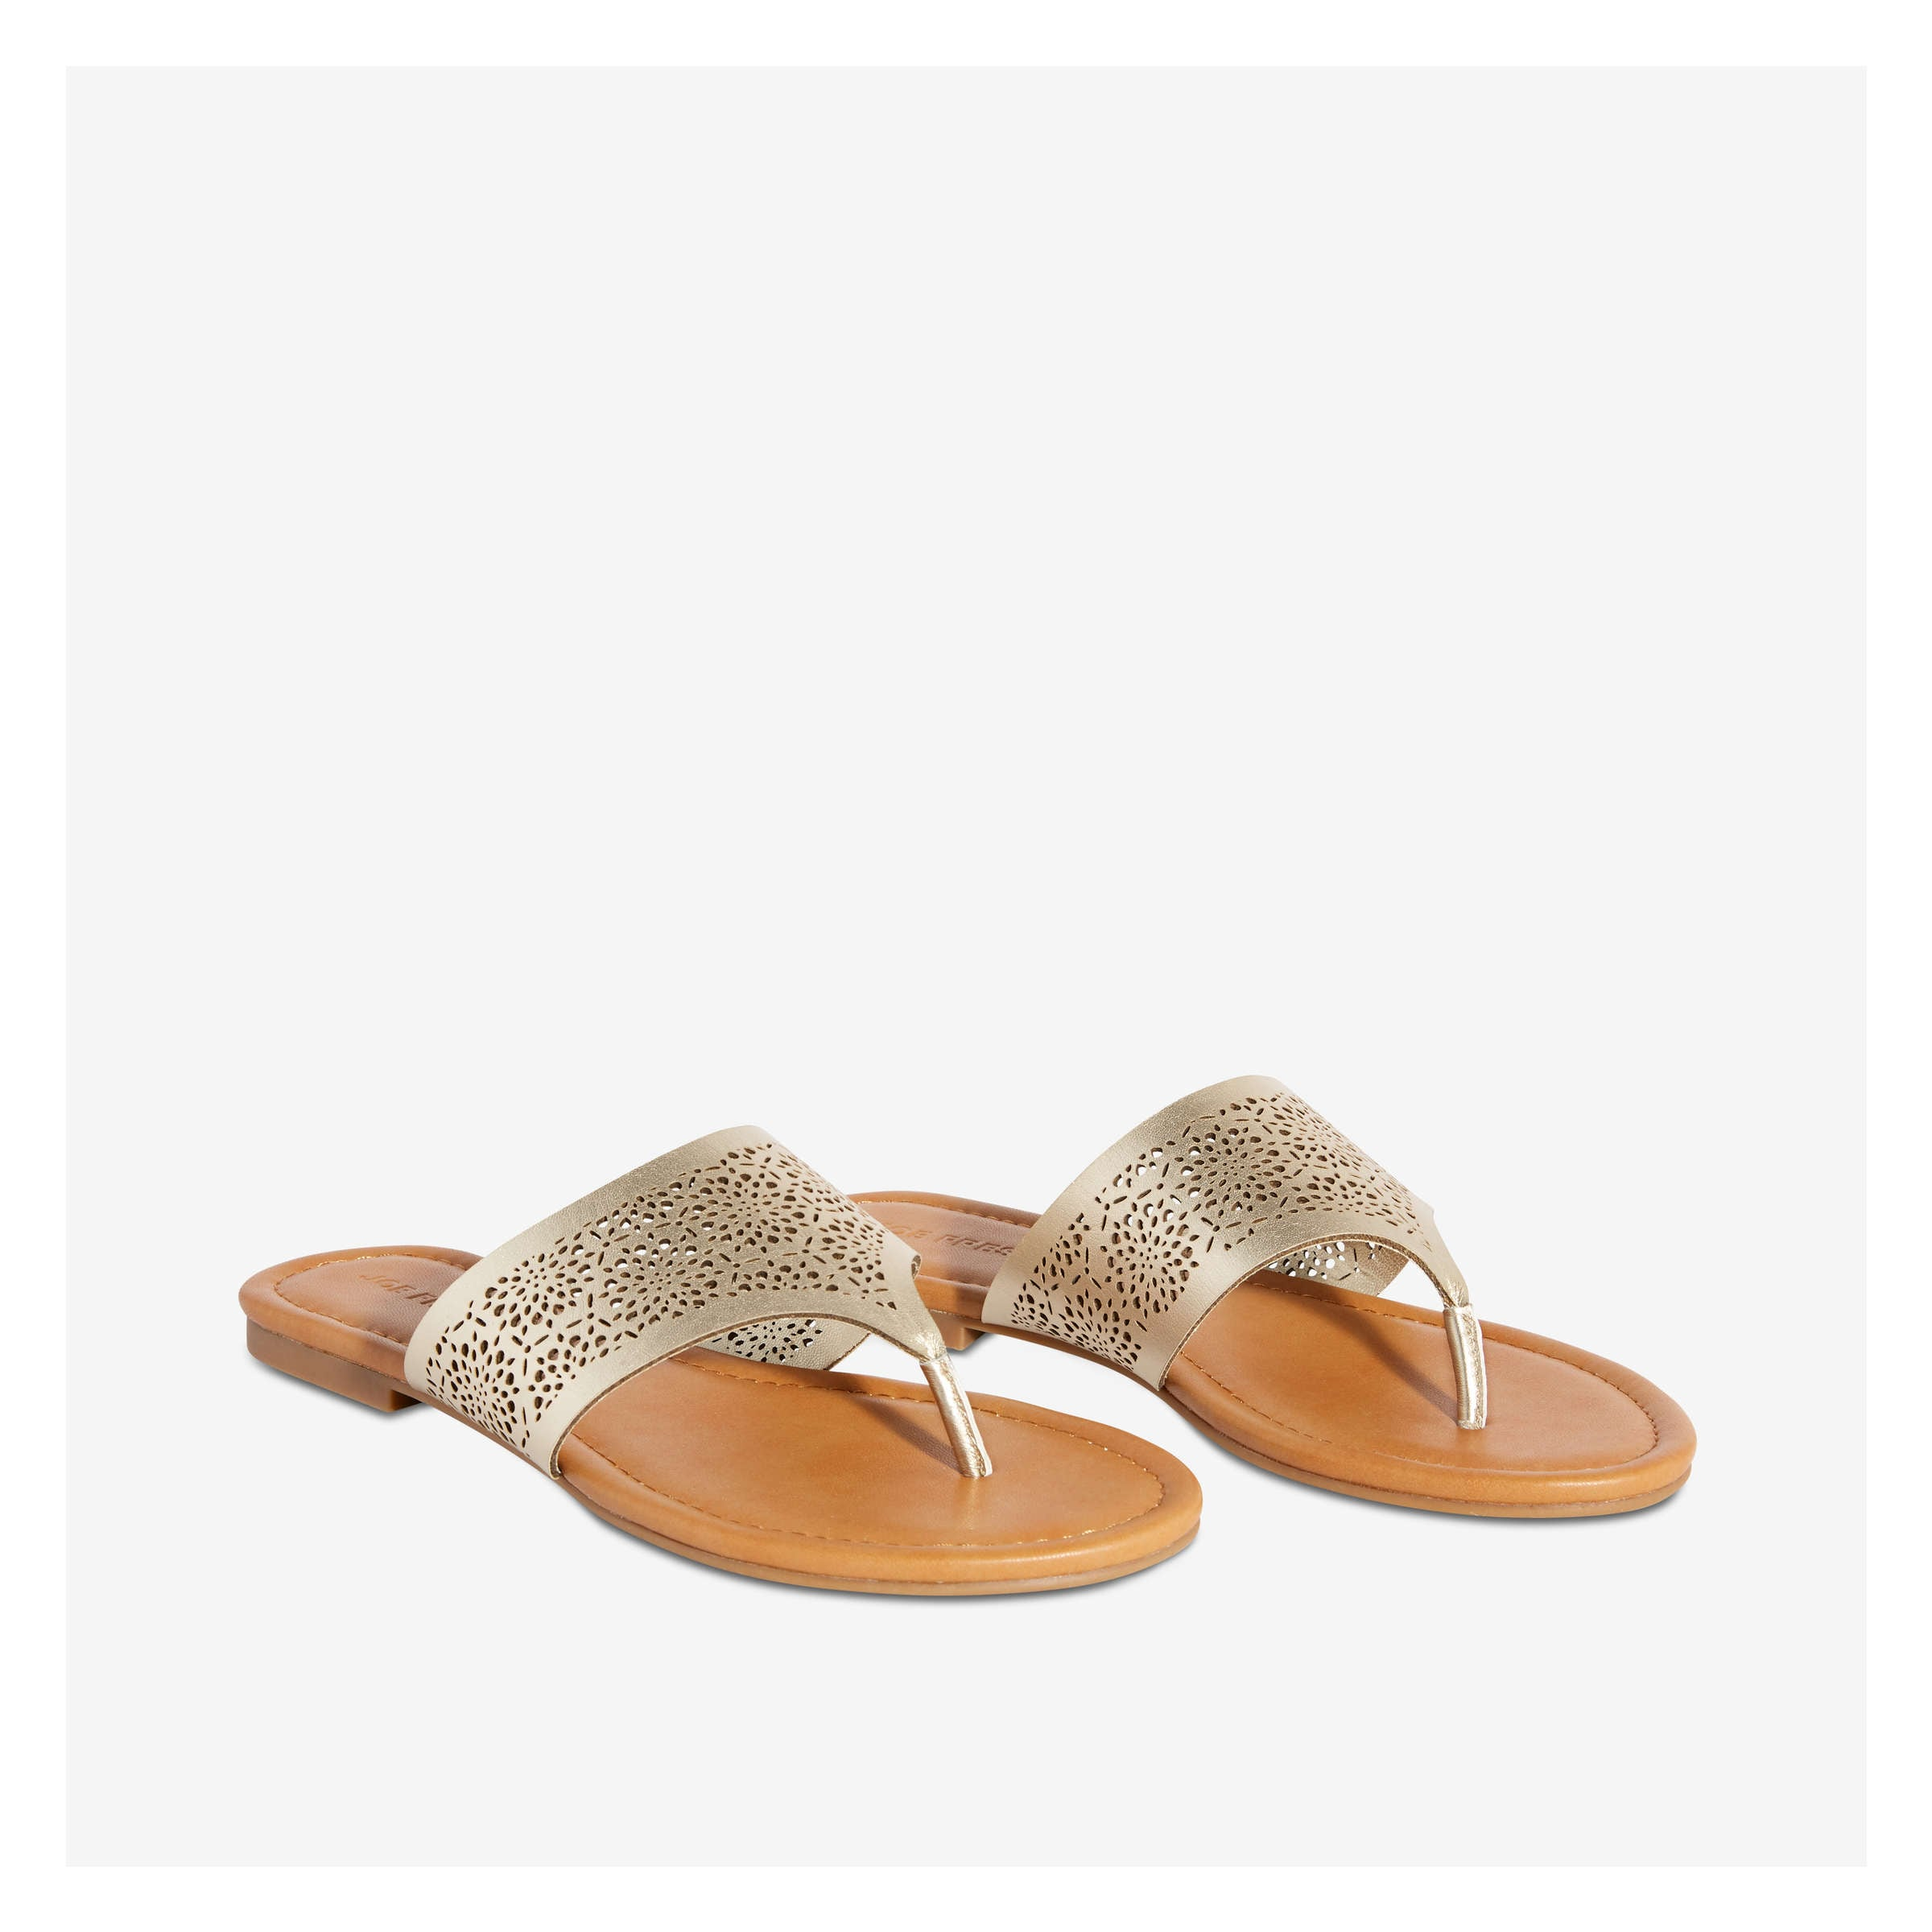 1bf4021e6f3b Laser Cut-Out Thong Sandal in Light Gold from Joe Fresh